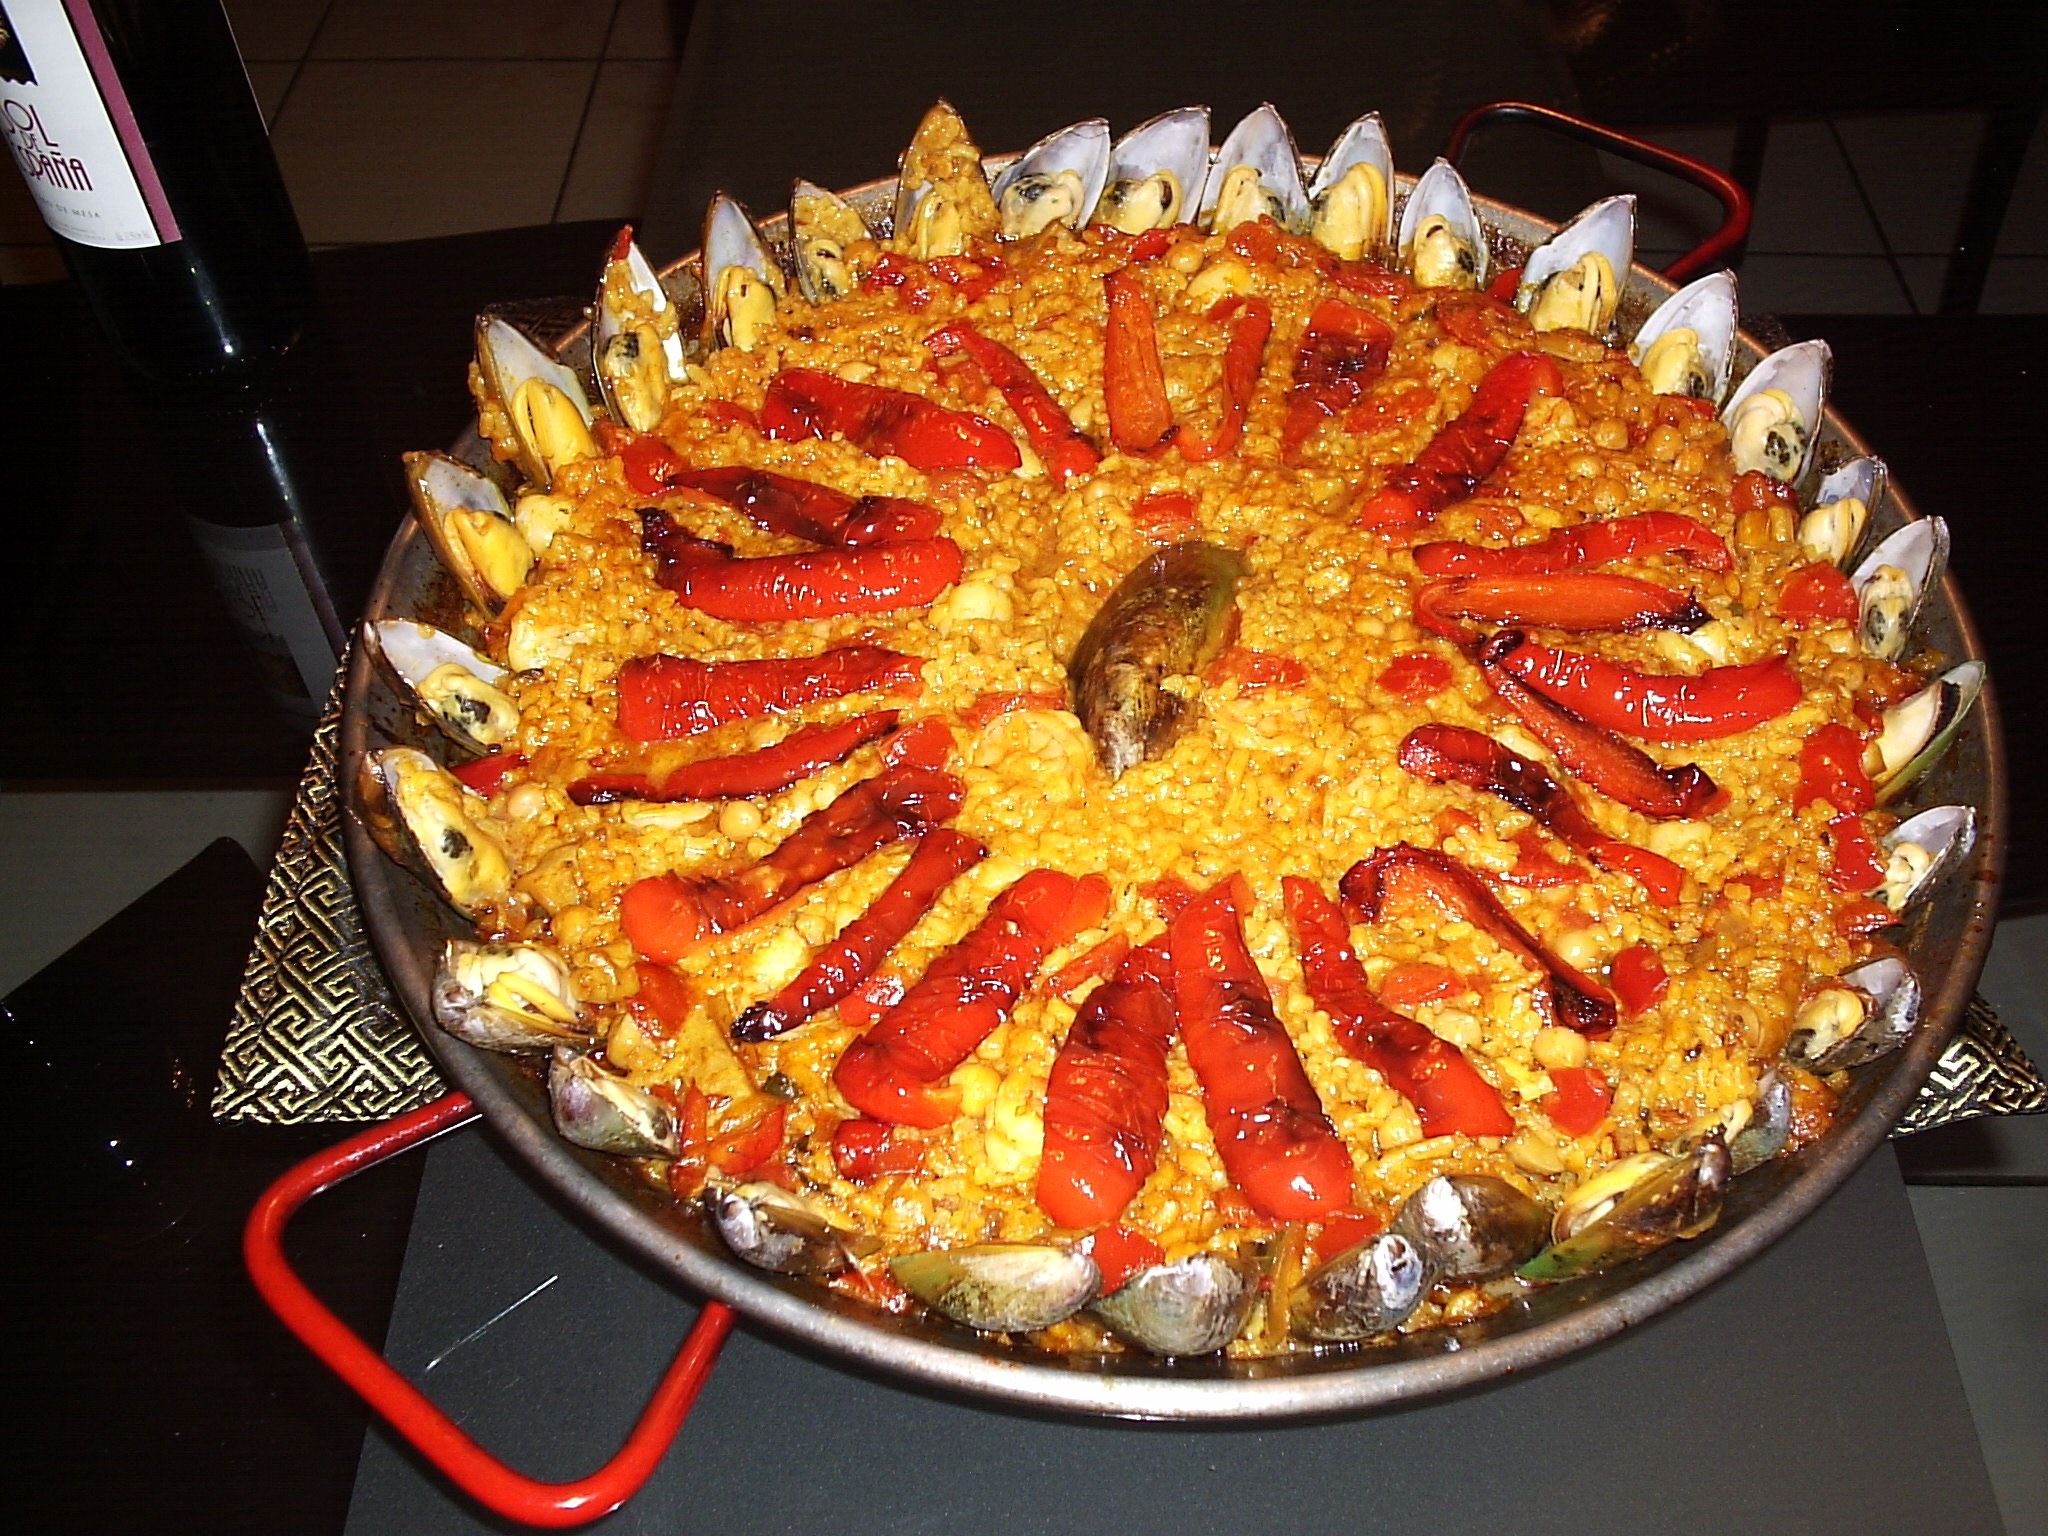 File:Red paella with mussels.jpg - Wikimedia Commons